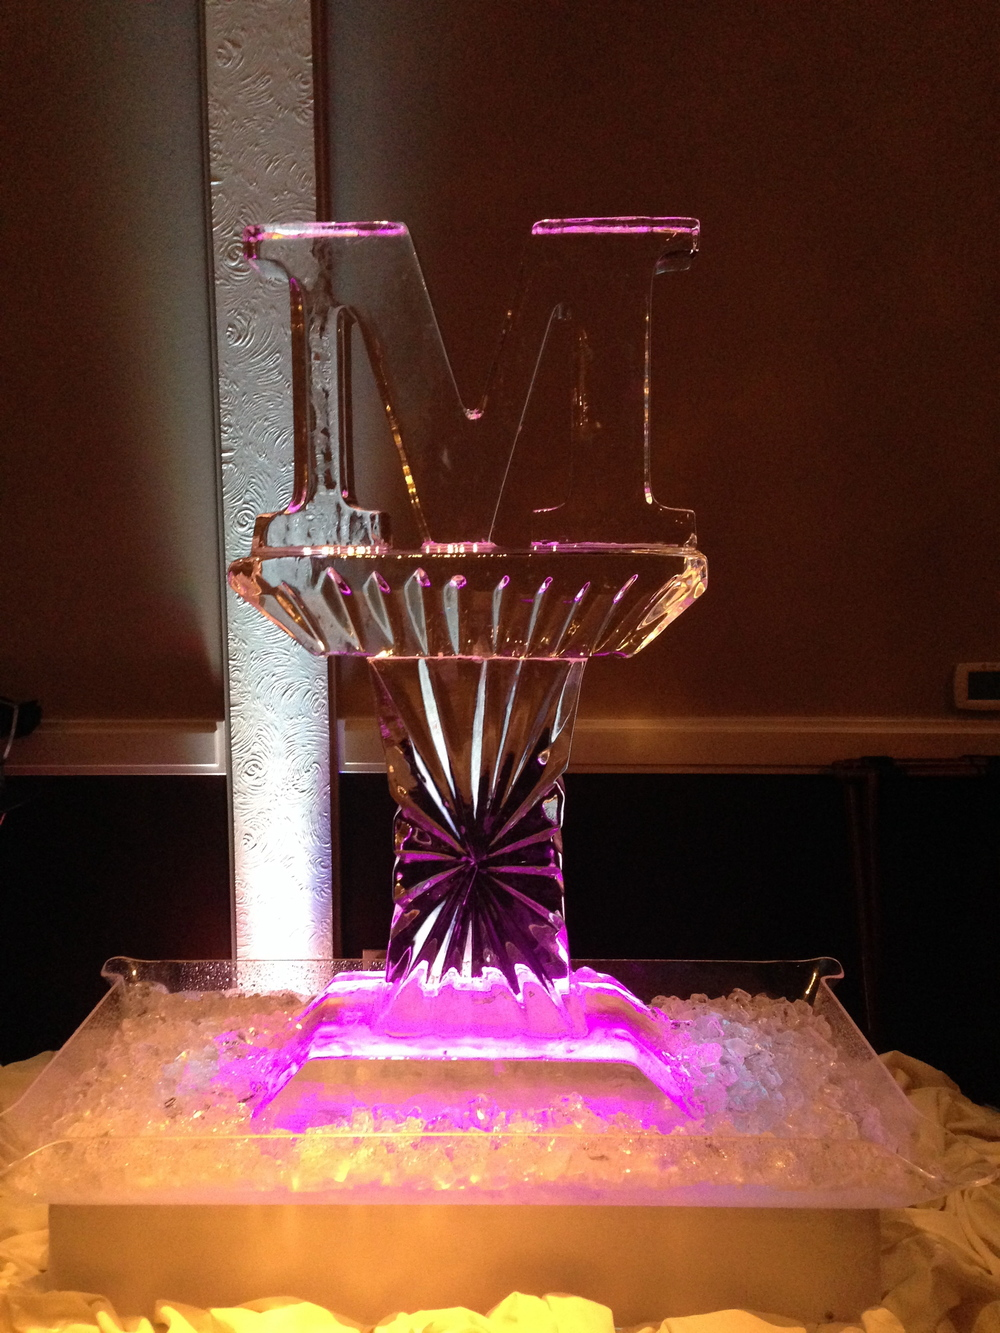 Letter M ice sculpture